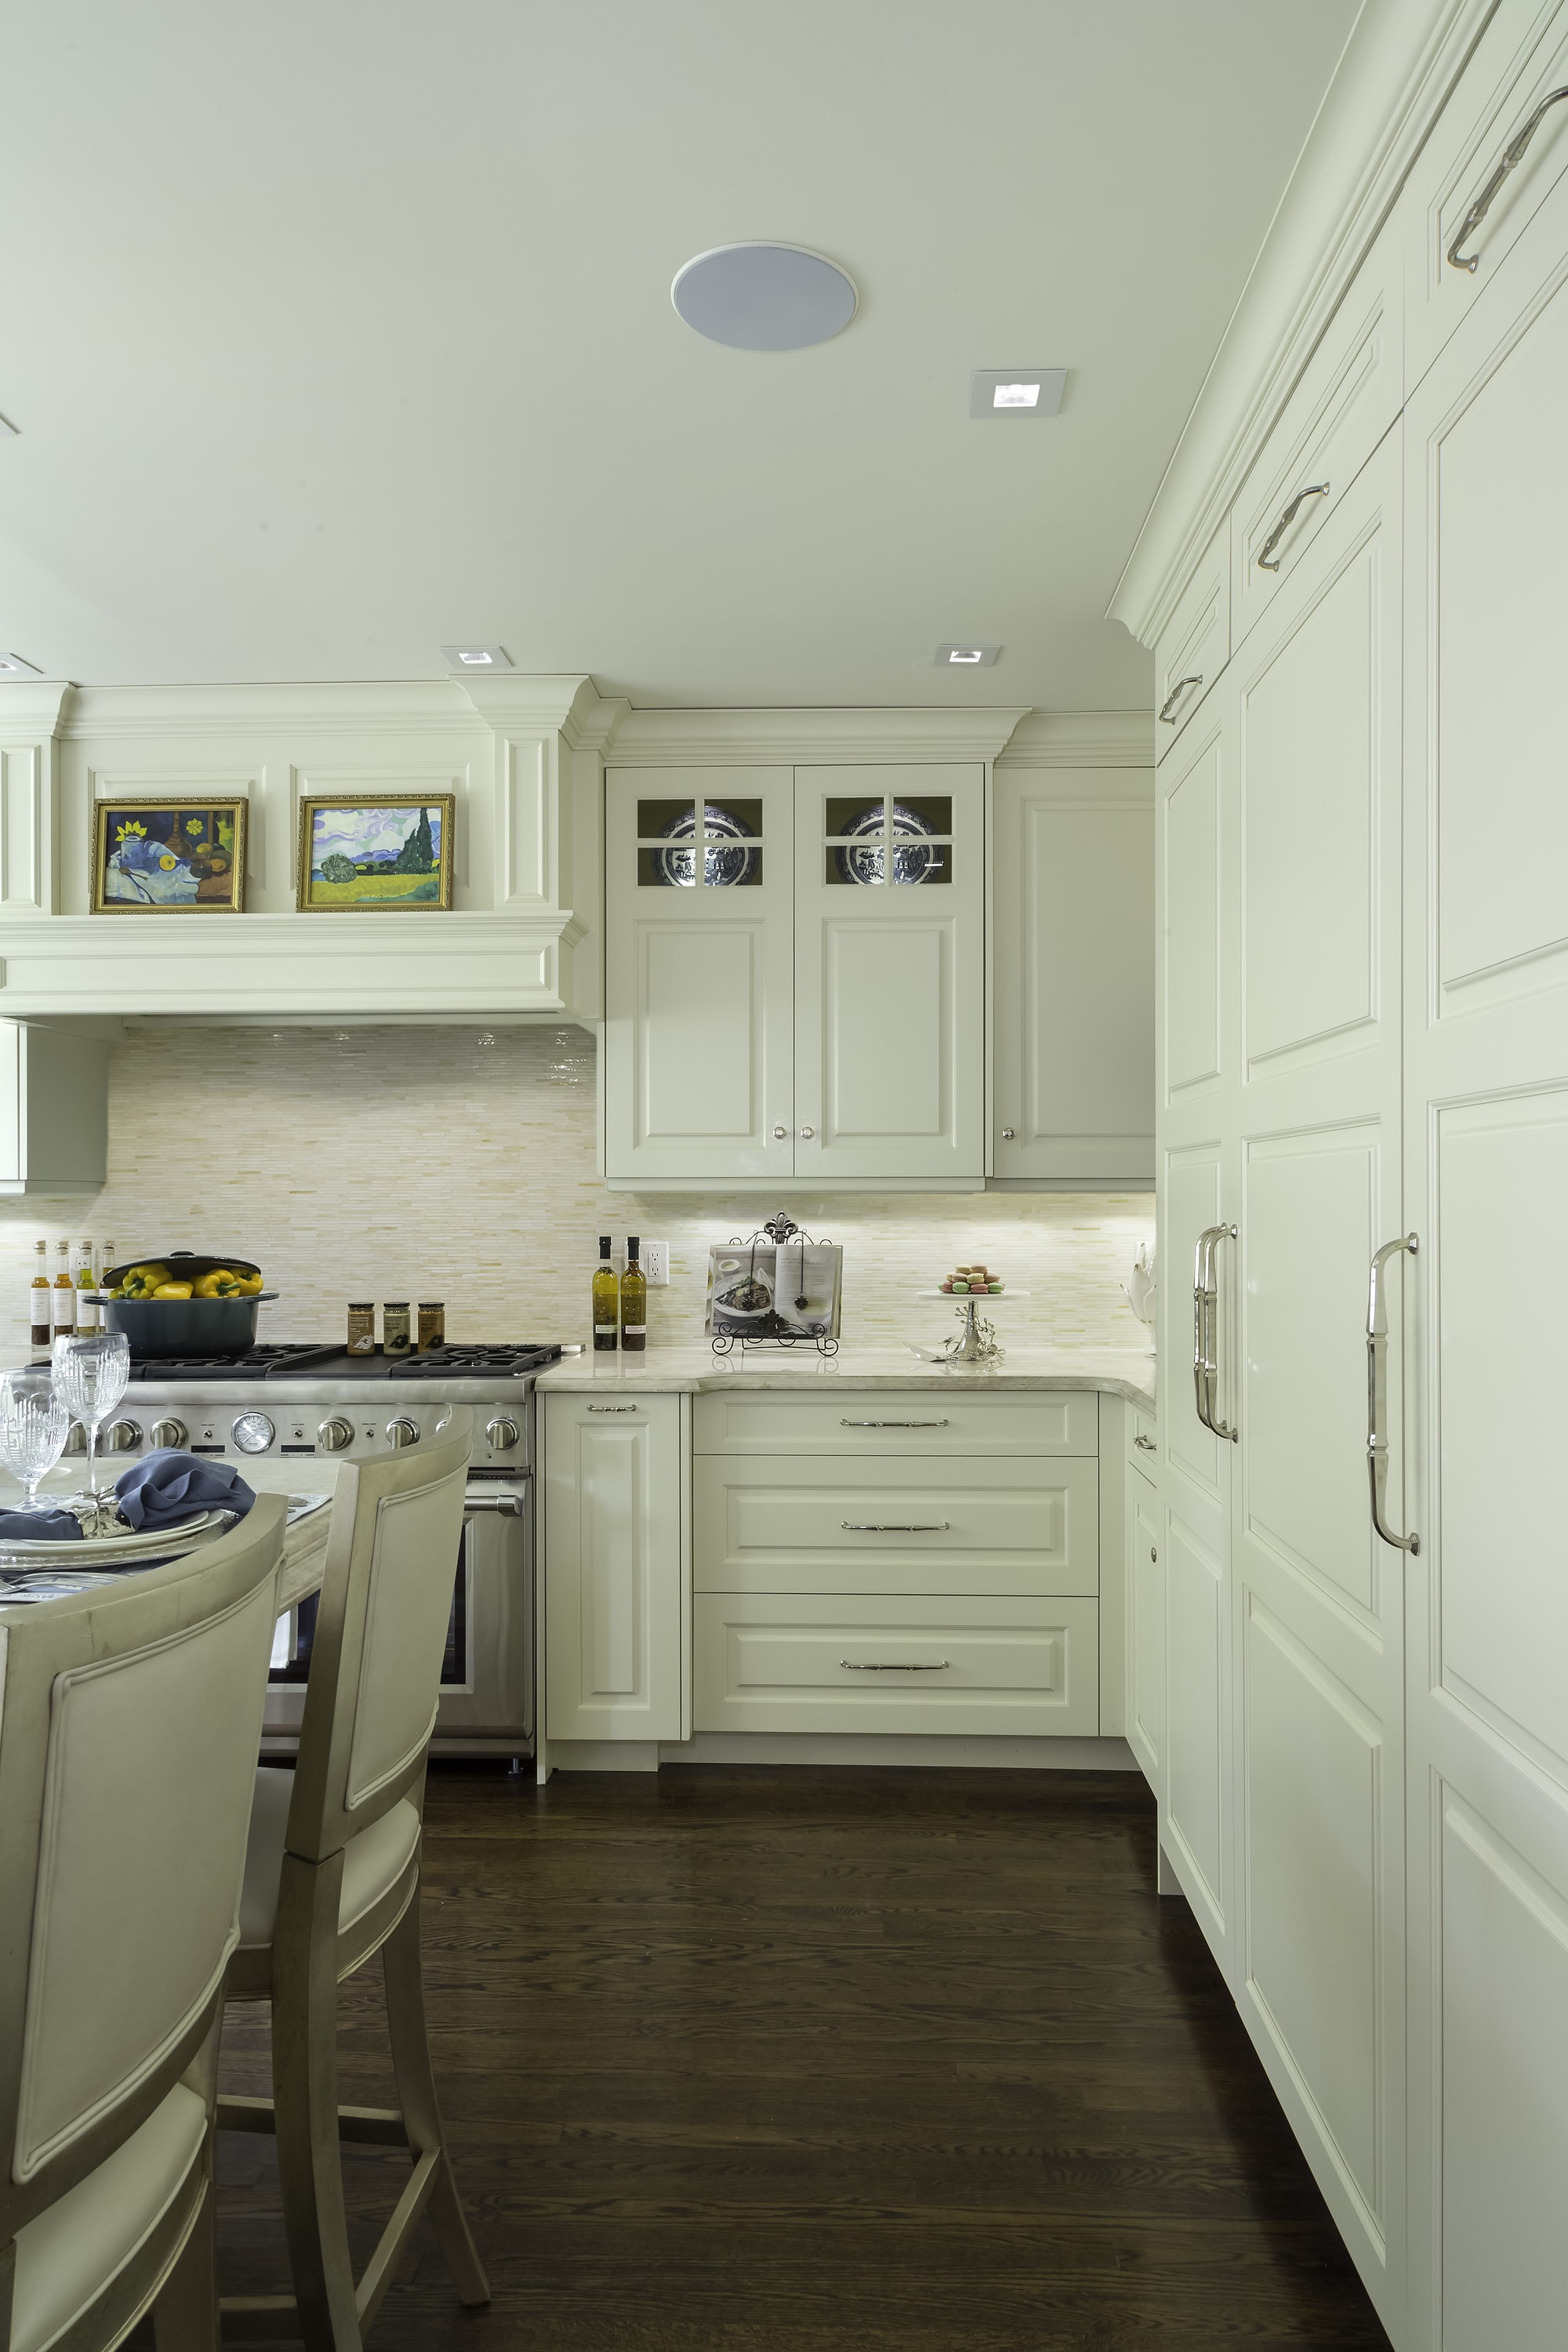 Traditional style kitchen with spacious drawers and cabinets